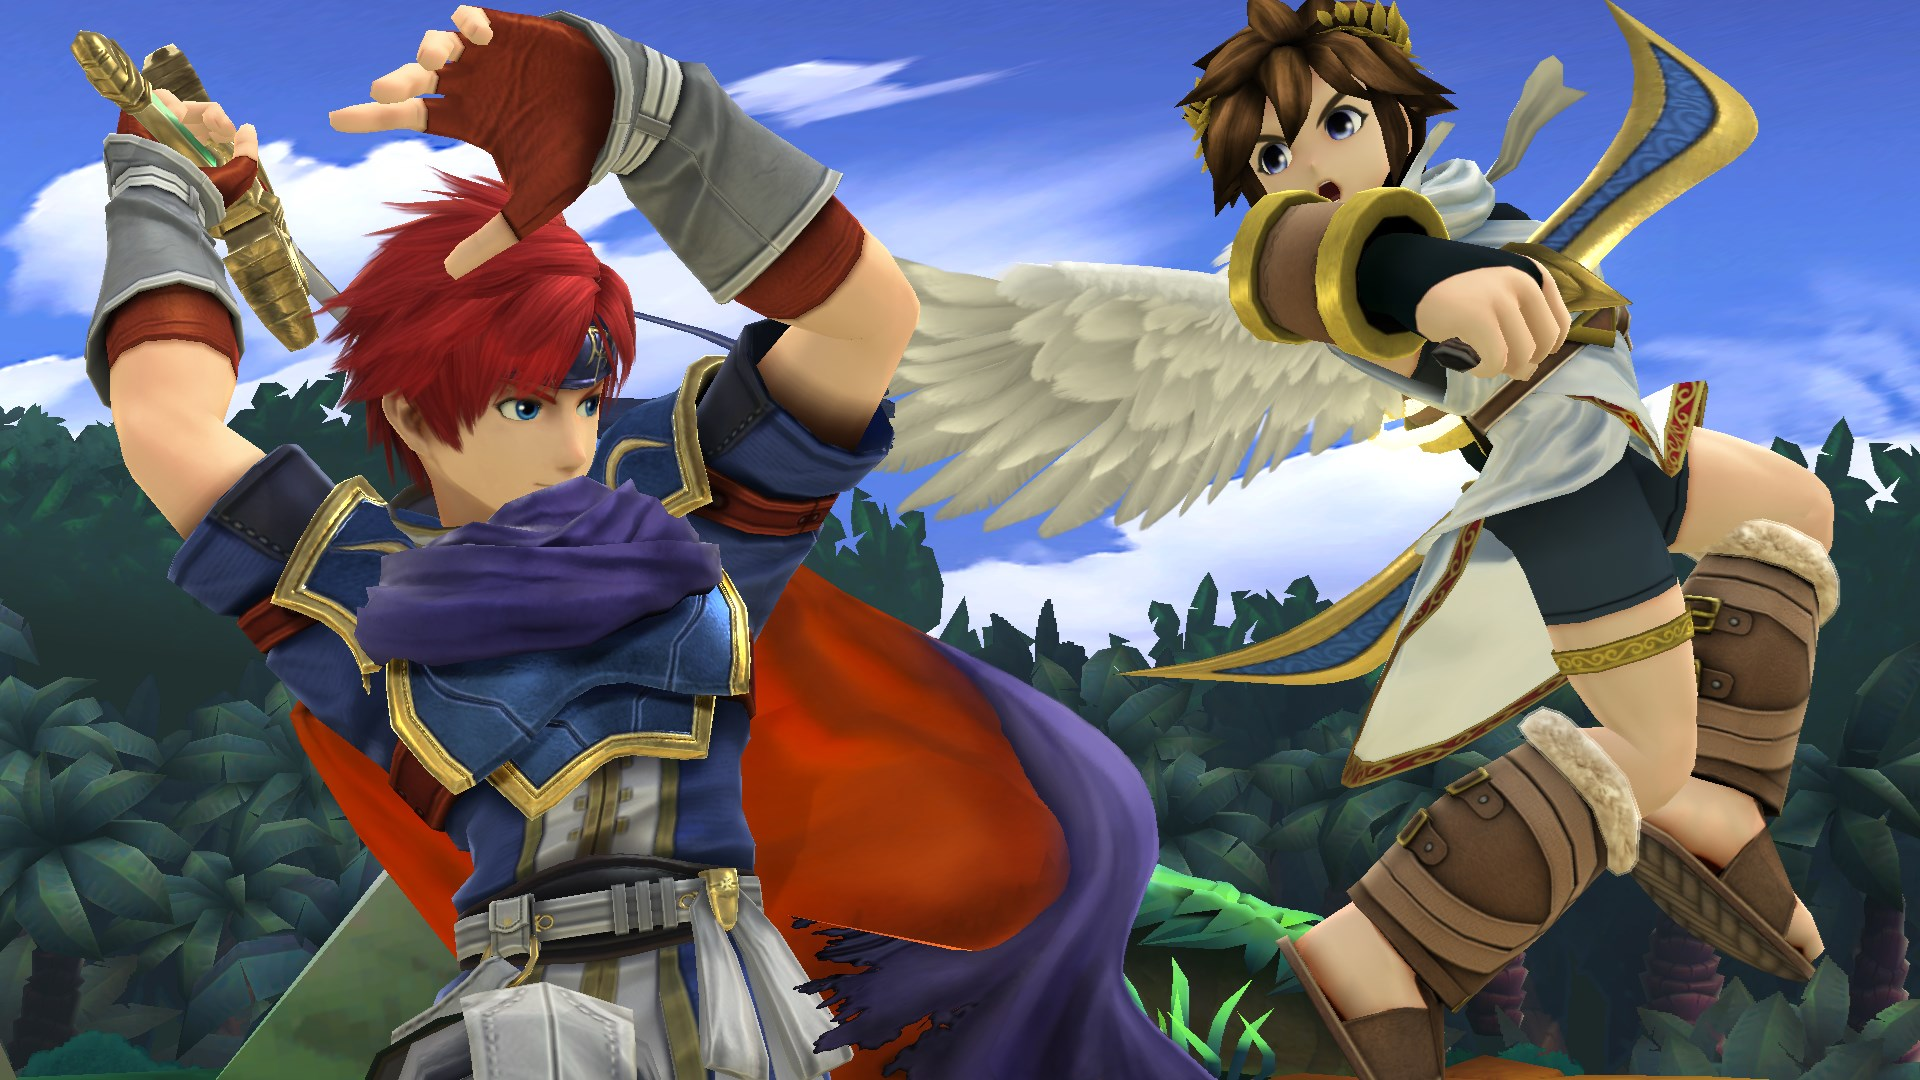 Rumor: Three New Characters and Six New Stages Coming To Smash Soon?